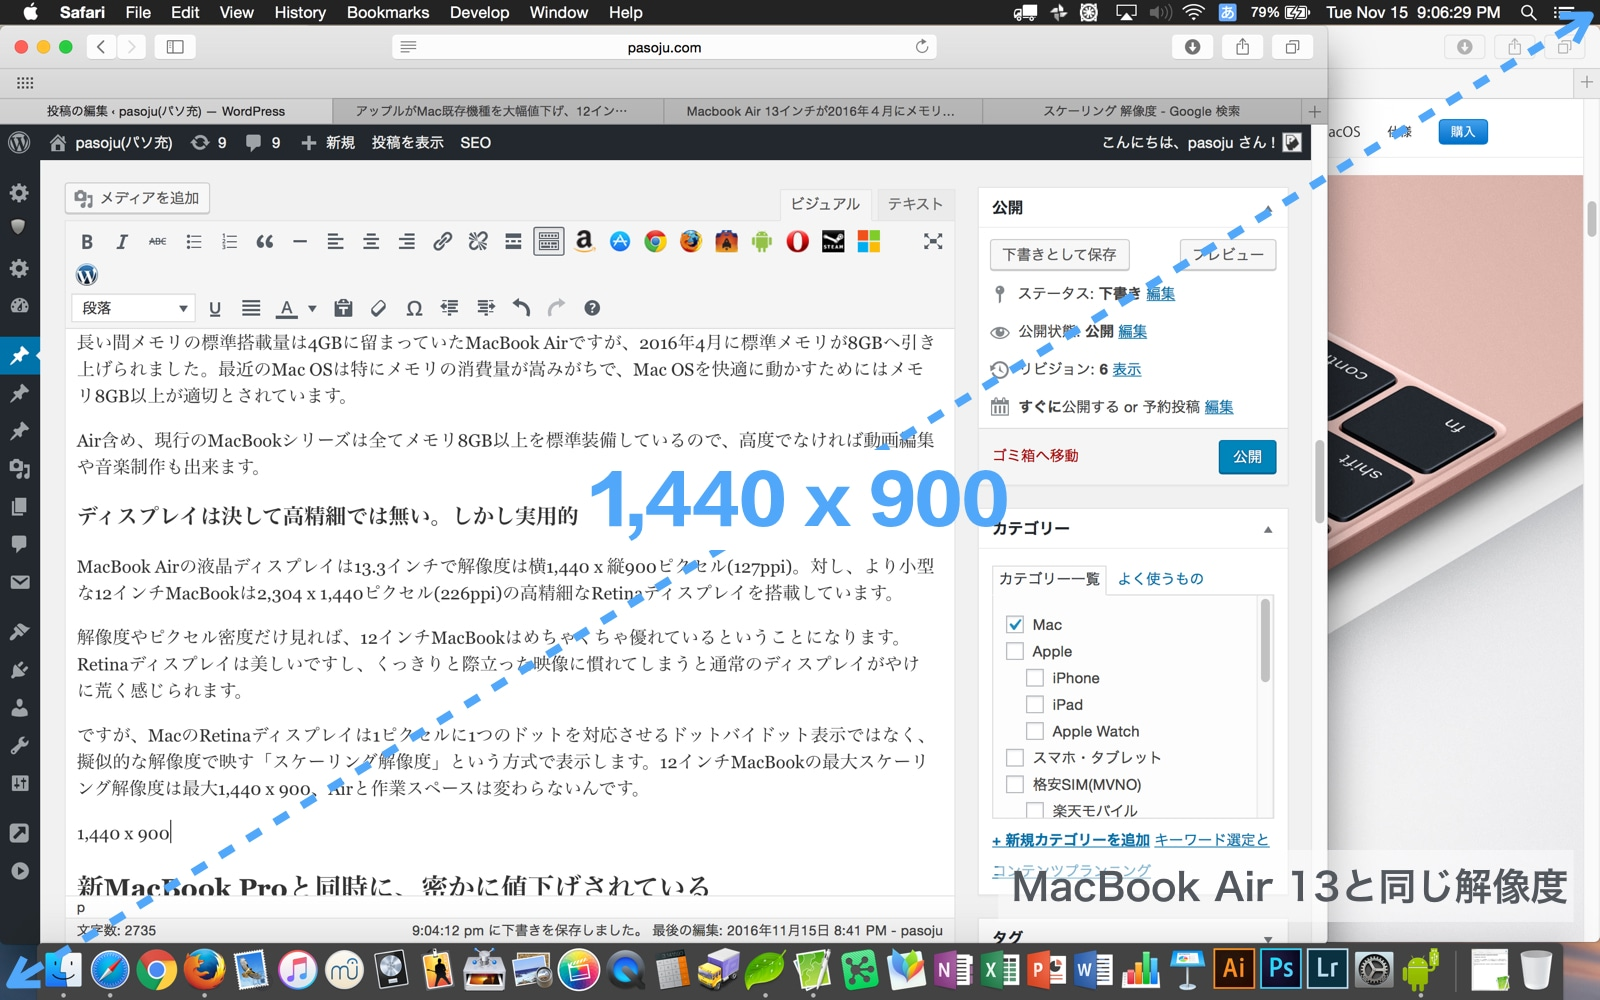 MacBook Air 解像度